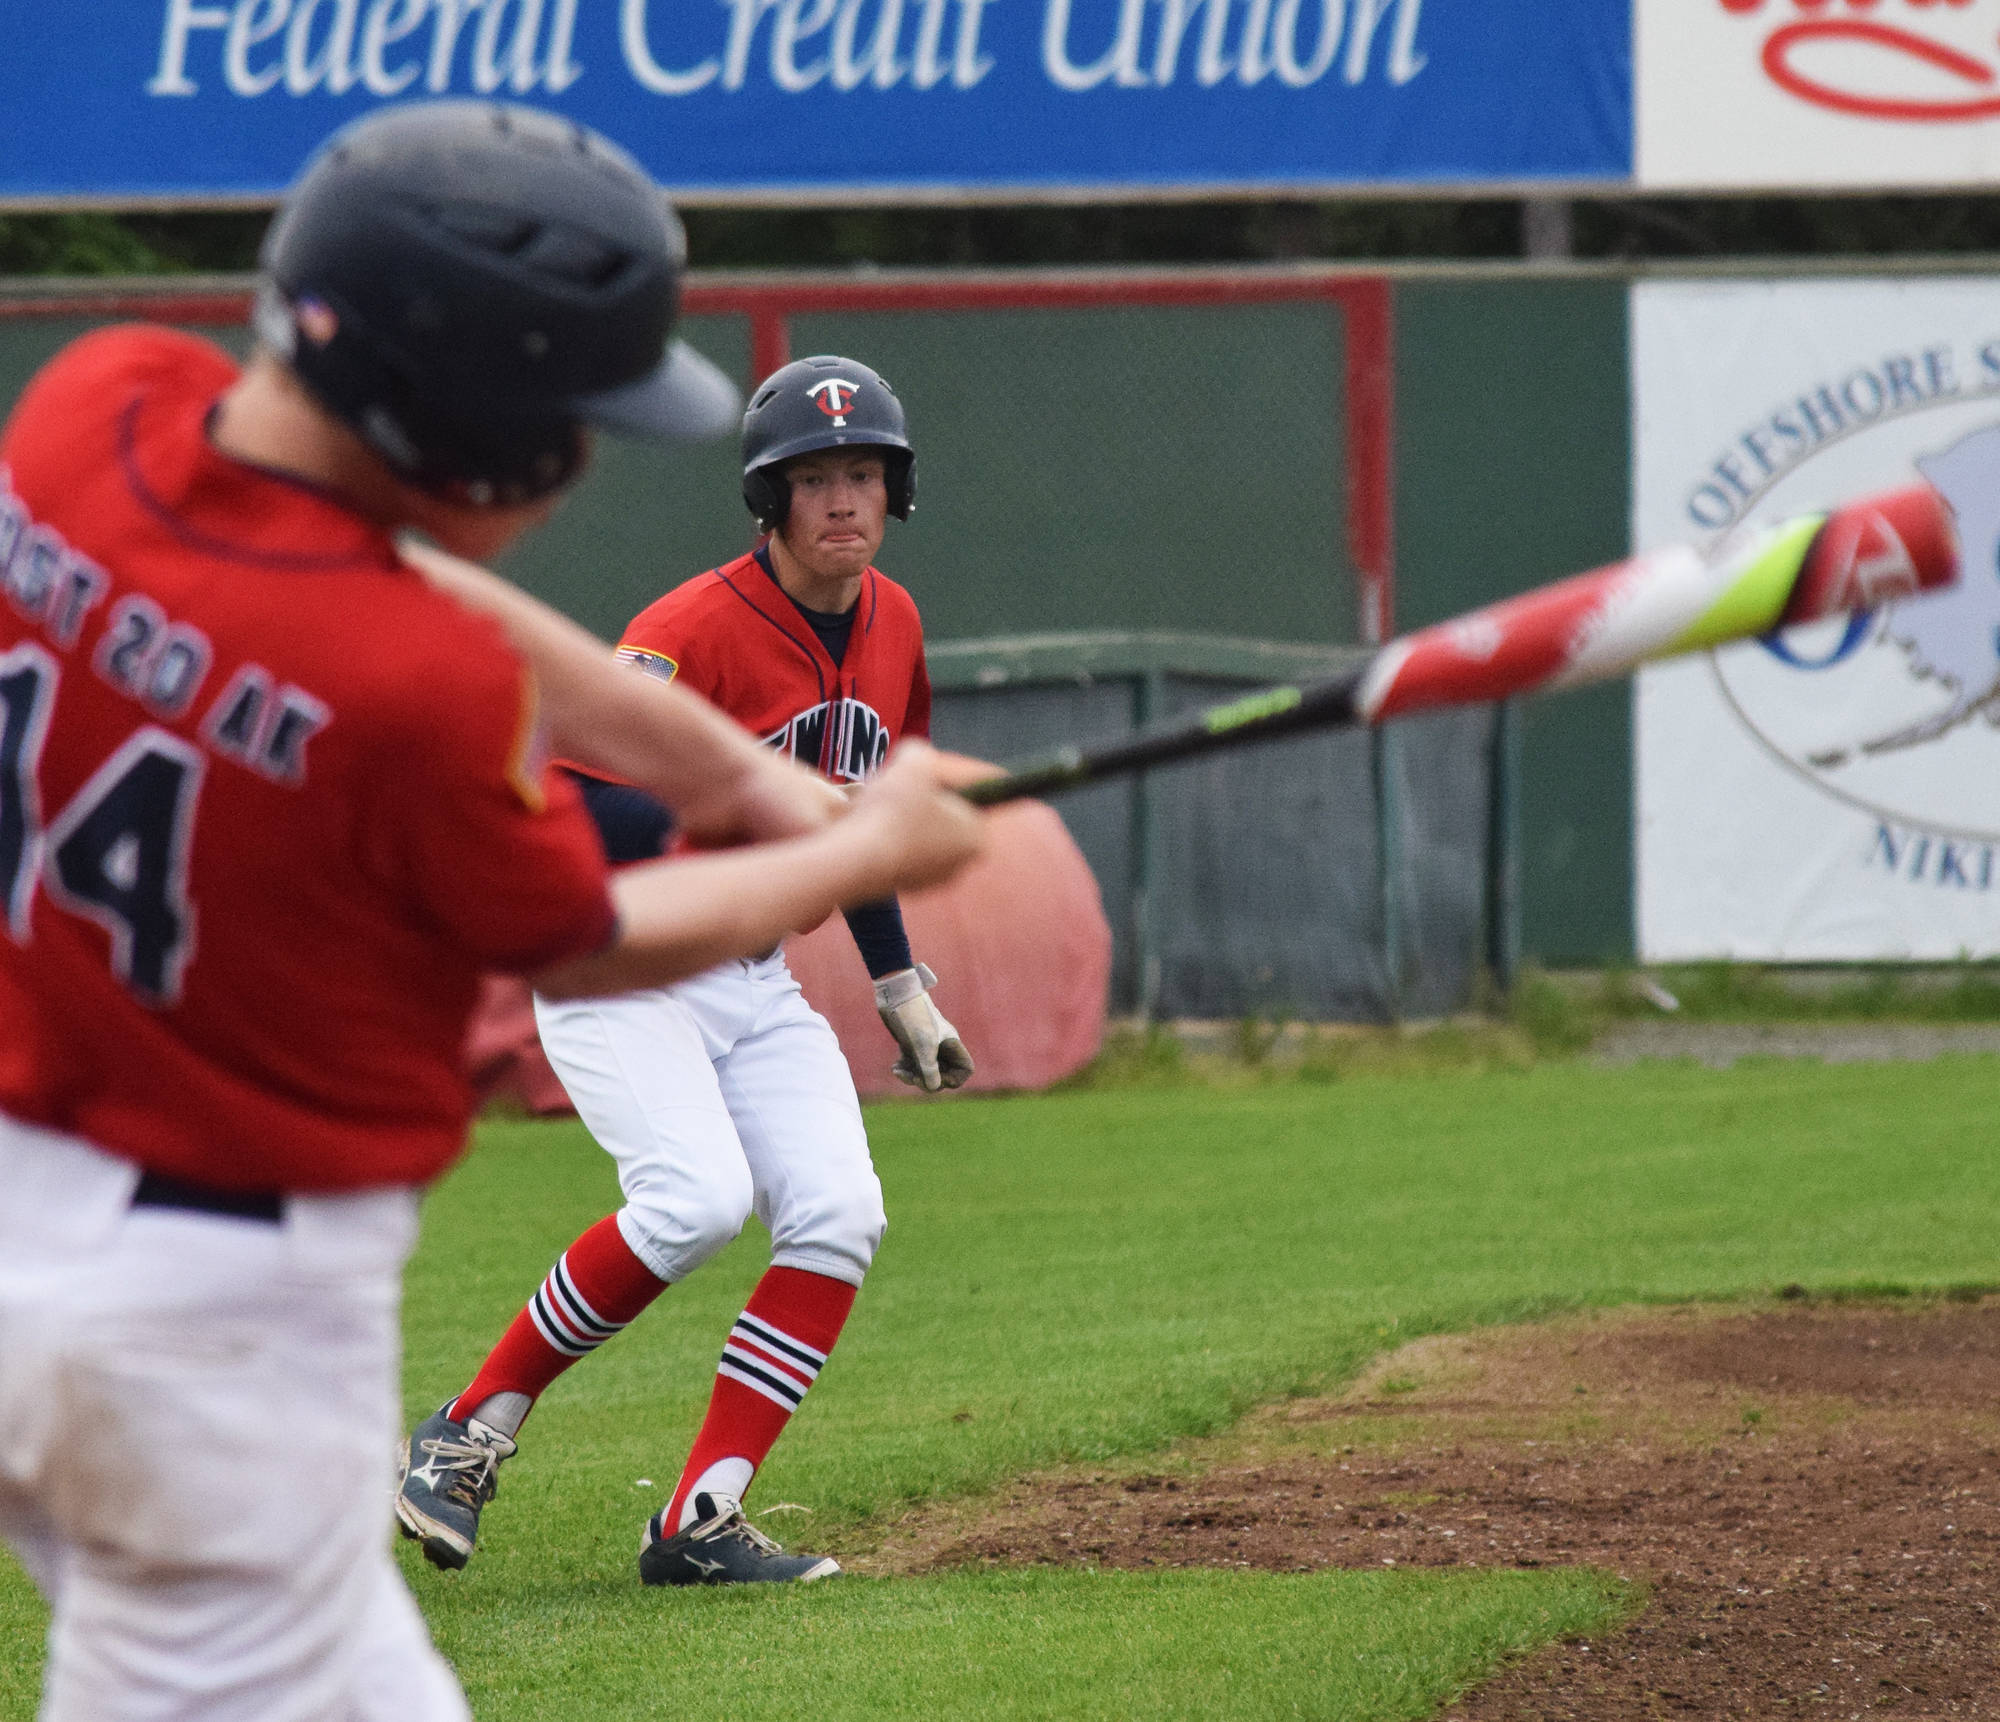 Post 20 Twins' Jeremy Kupferschmid watches teammate Mose Hayes take a swing against South Post 4 Saturday at Coral Seymour Memorial Park in Kenai. (Photo by Joey Klecka/Peninsula Clarion)